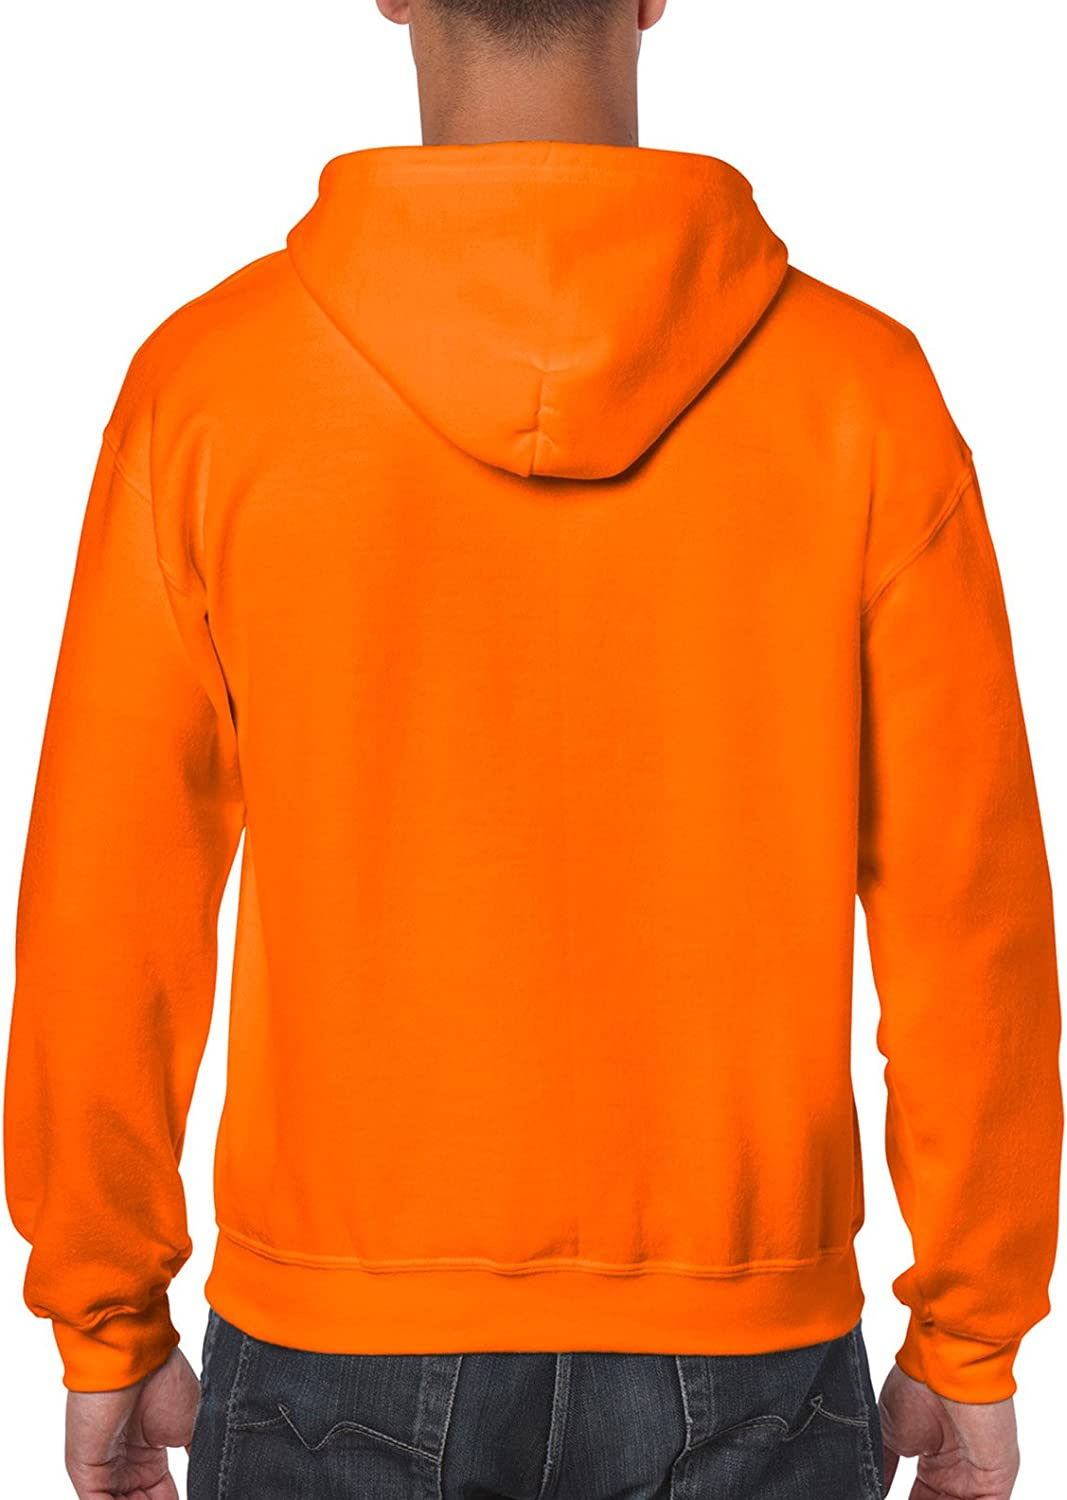 Gildan 18600 Heavyweight Blend Kapuzenpullover mit Reißverschluss Safety Orange